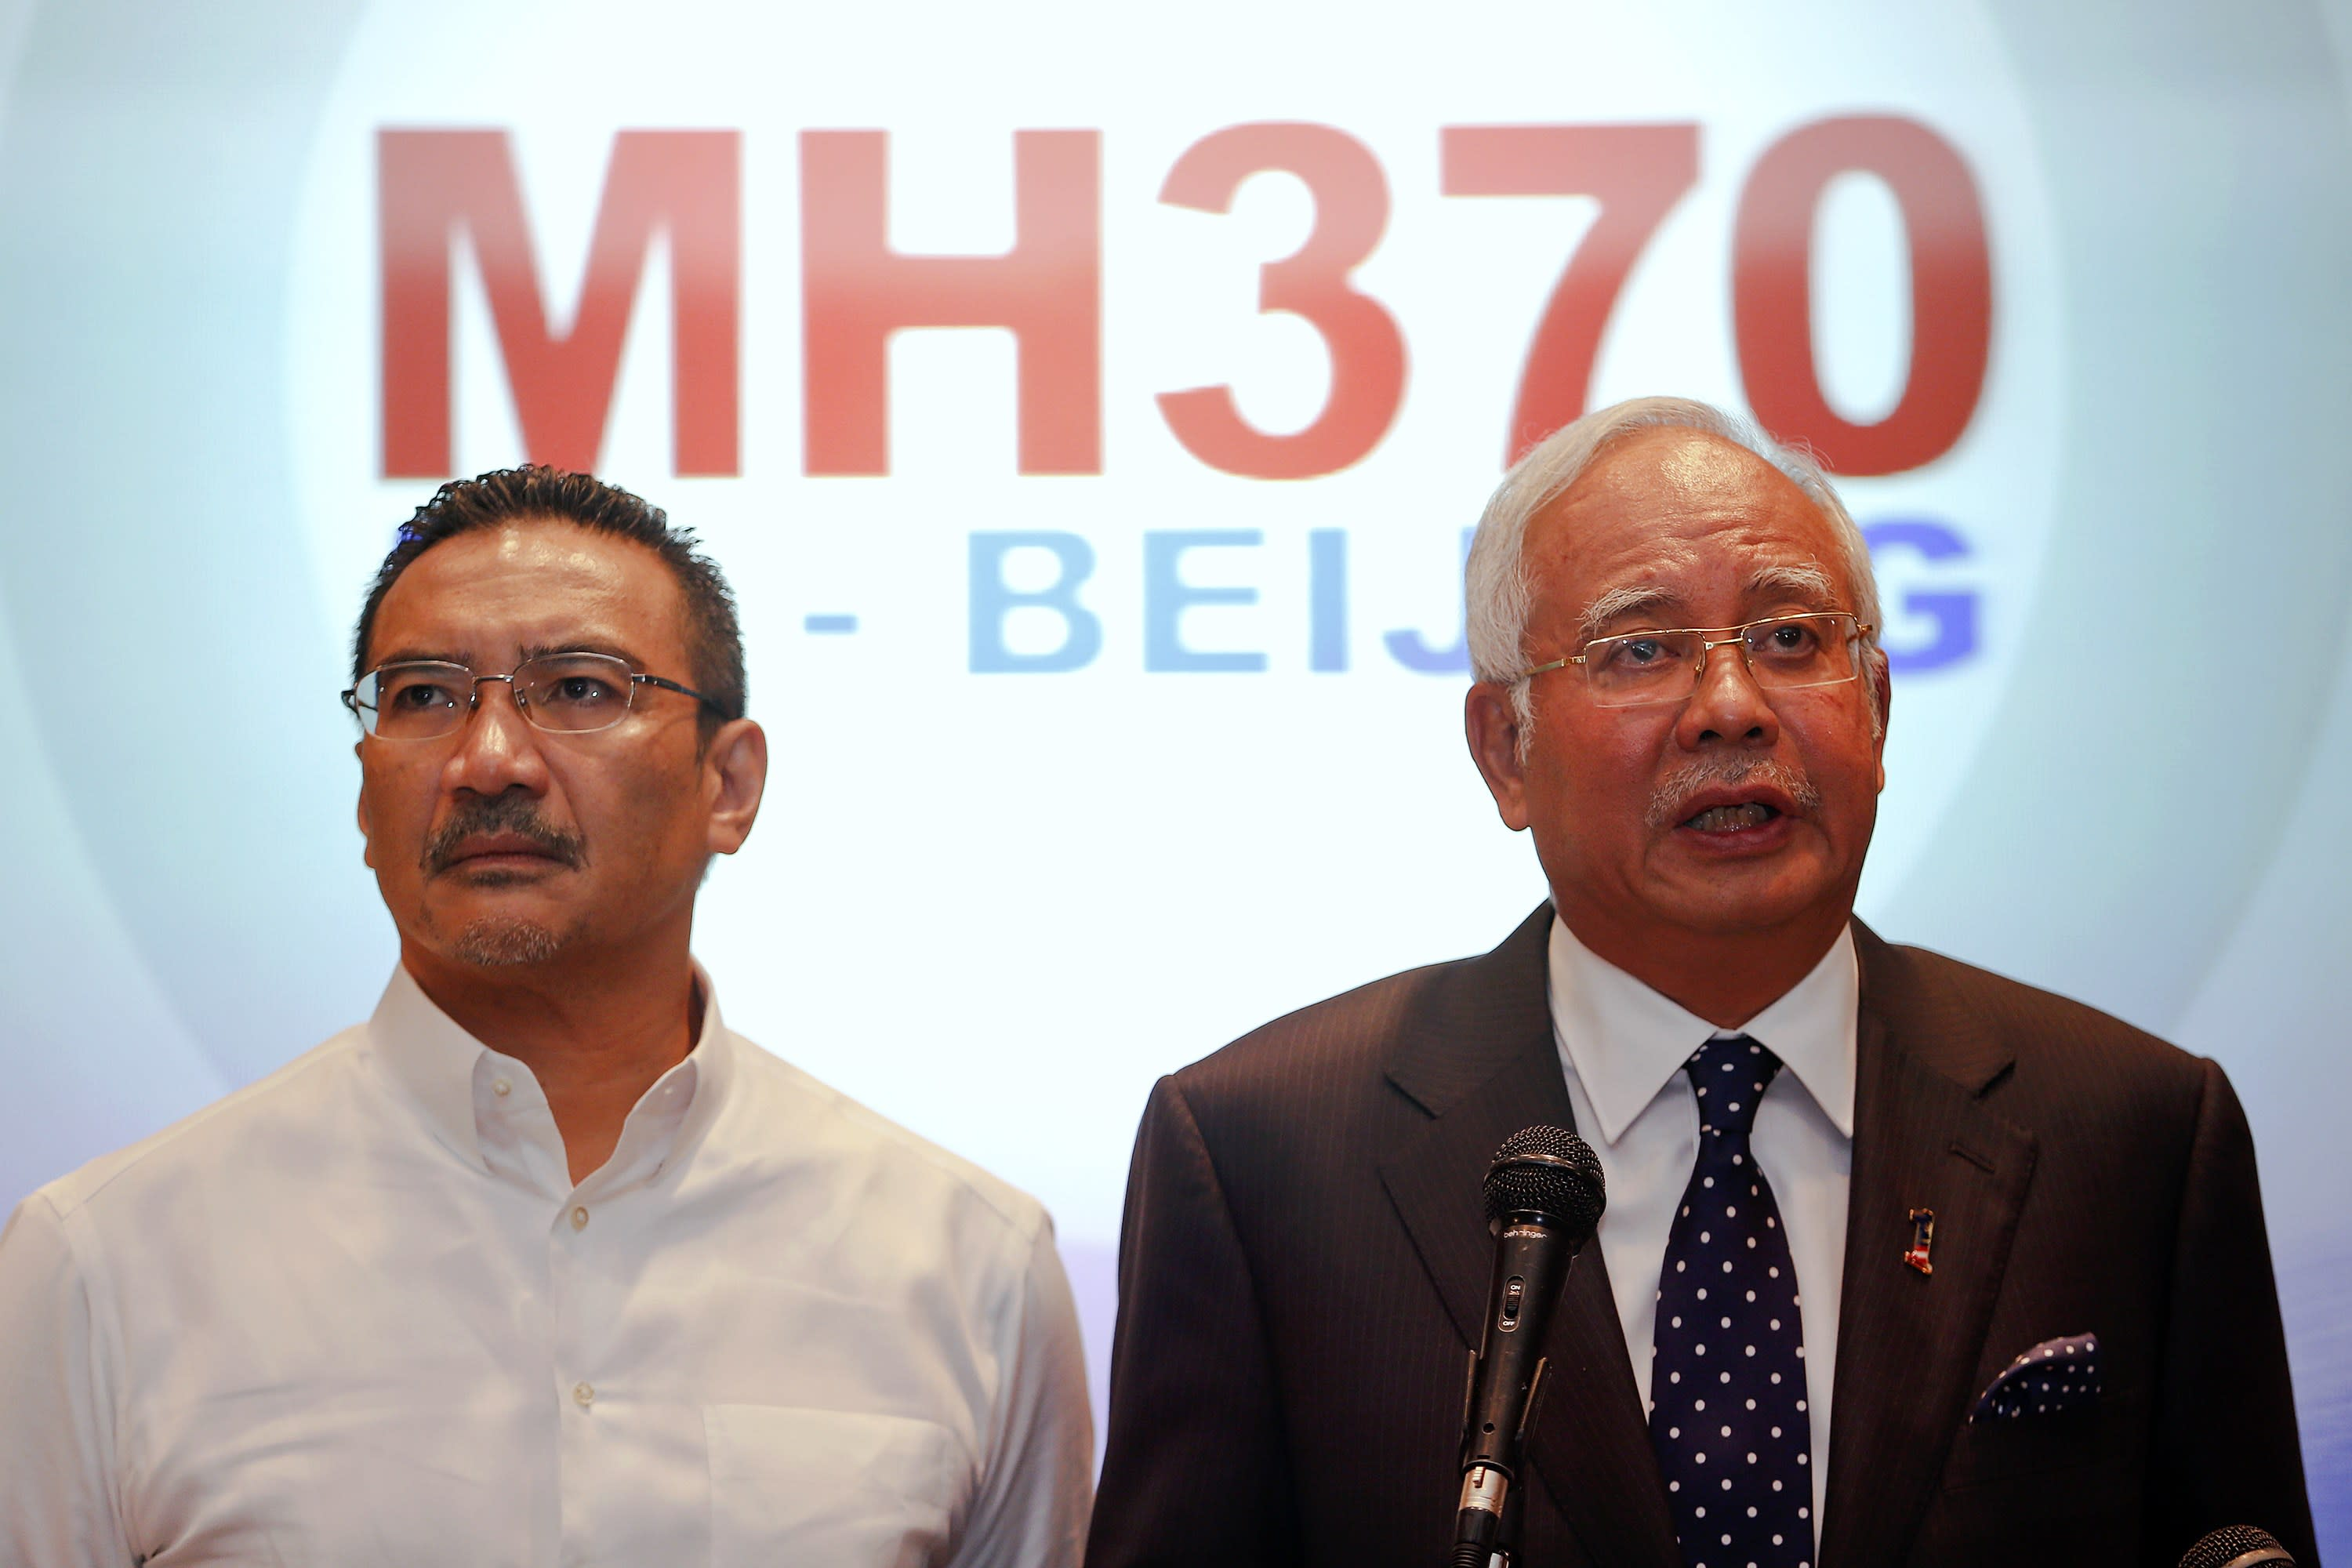 REFILE WITH ADDITIONAL INFORMATION Malaysian Prime Minister Najib Razak (R) addresses reporters as Transport Minister Hishammuddin Hussein stands by him, at the Kuala Lumpur International Airport March 15, 2014. Najib said on Saturday that the movements of the missing Malaysia Airlines Flight MH370 were consistent with a deliberate act by someone who turned the jet back across Malaysia and onwards to the west. REUTERS/Damir Sagolj (MALAYSIA - Tags: DISASTER TRANSPORT POLITICS TPX IMAGES OF THE DAY)